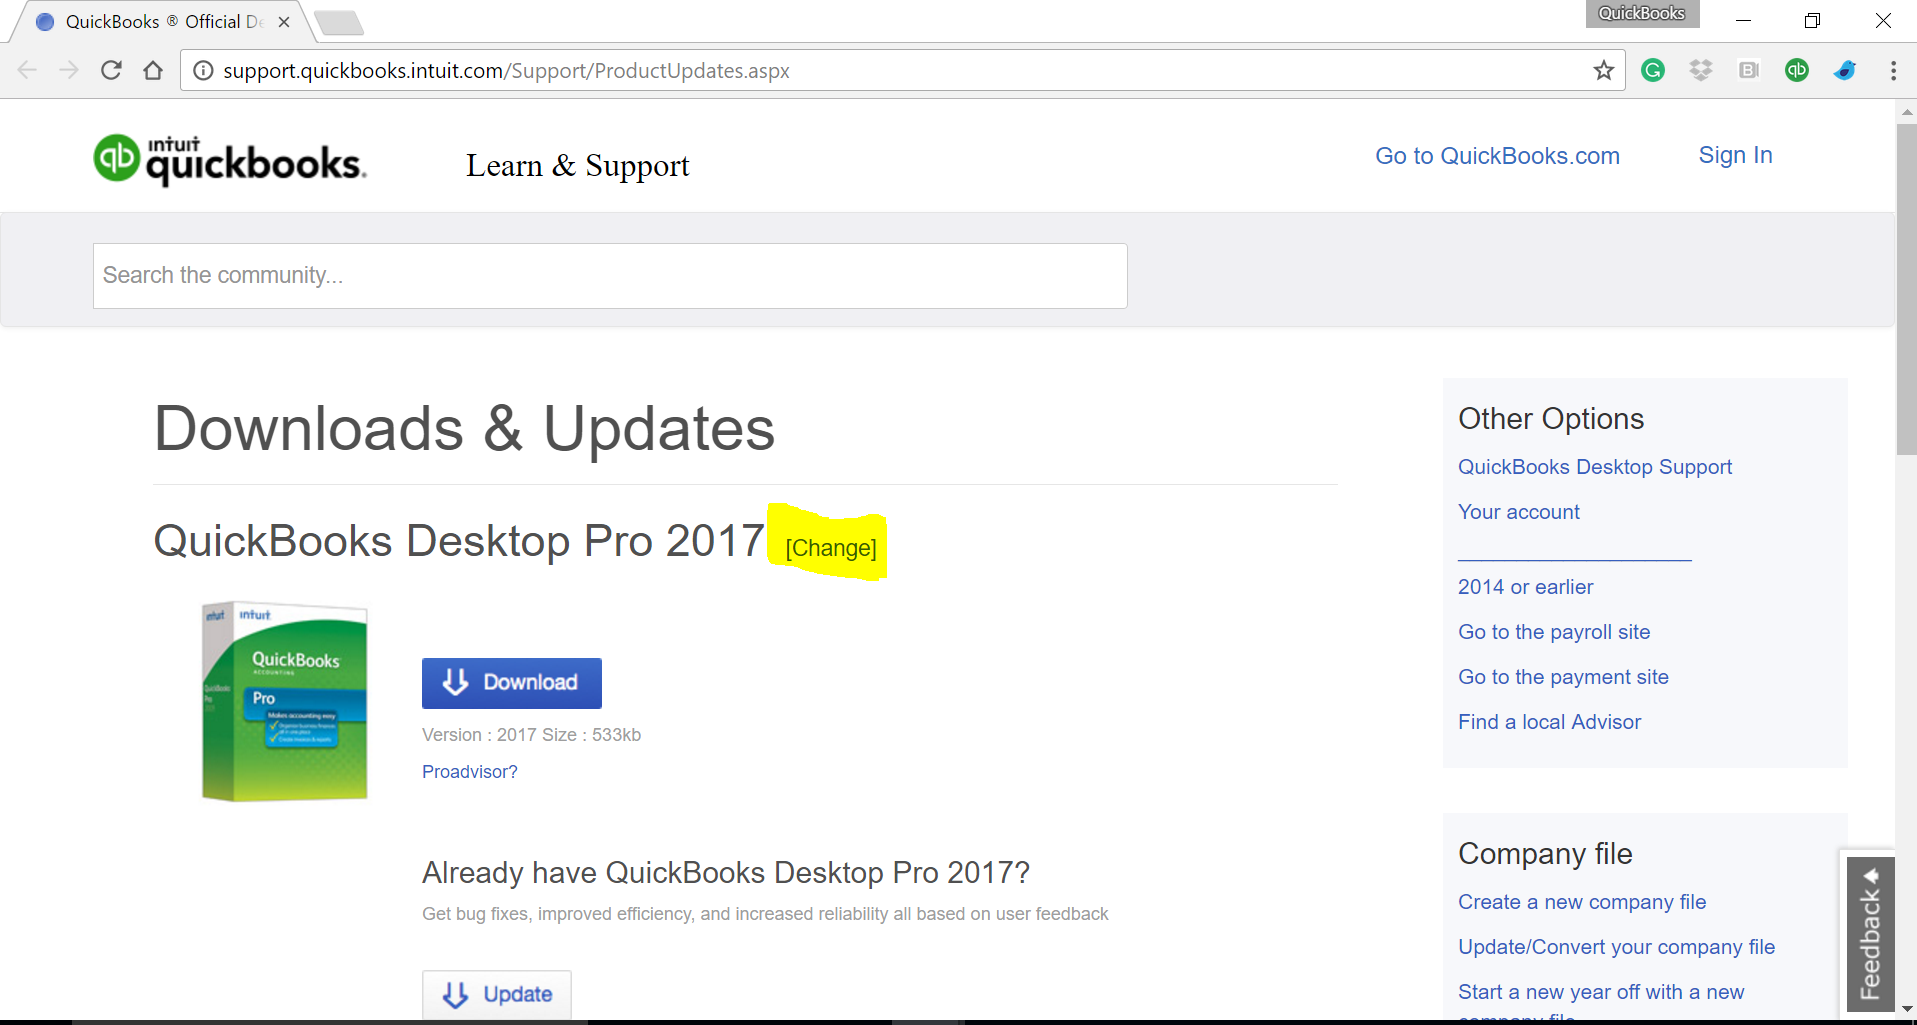 2017 quickbooks desktop pro download